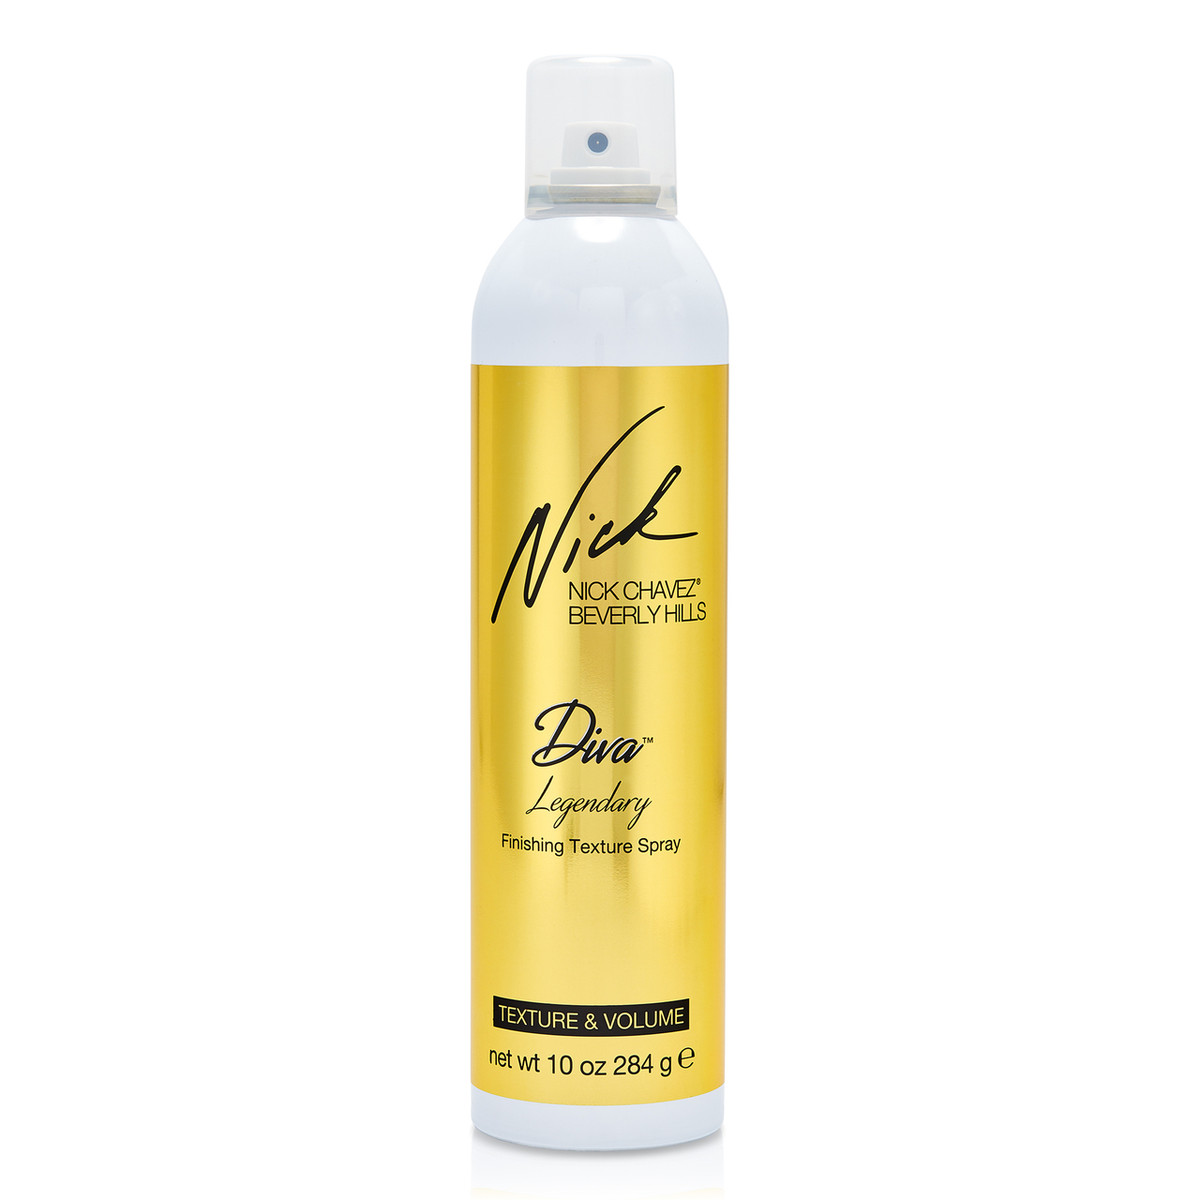 Diva® Legendary Finishing Texture Spray